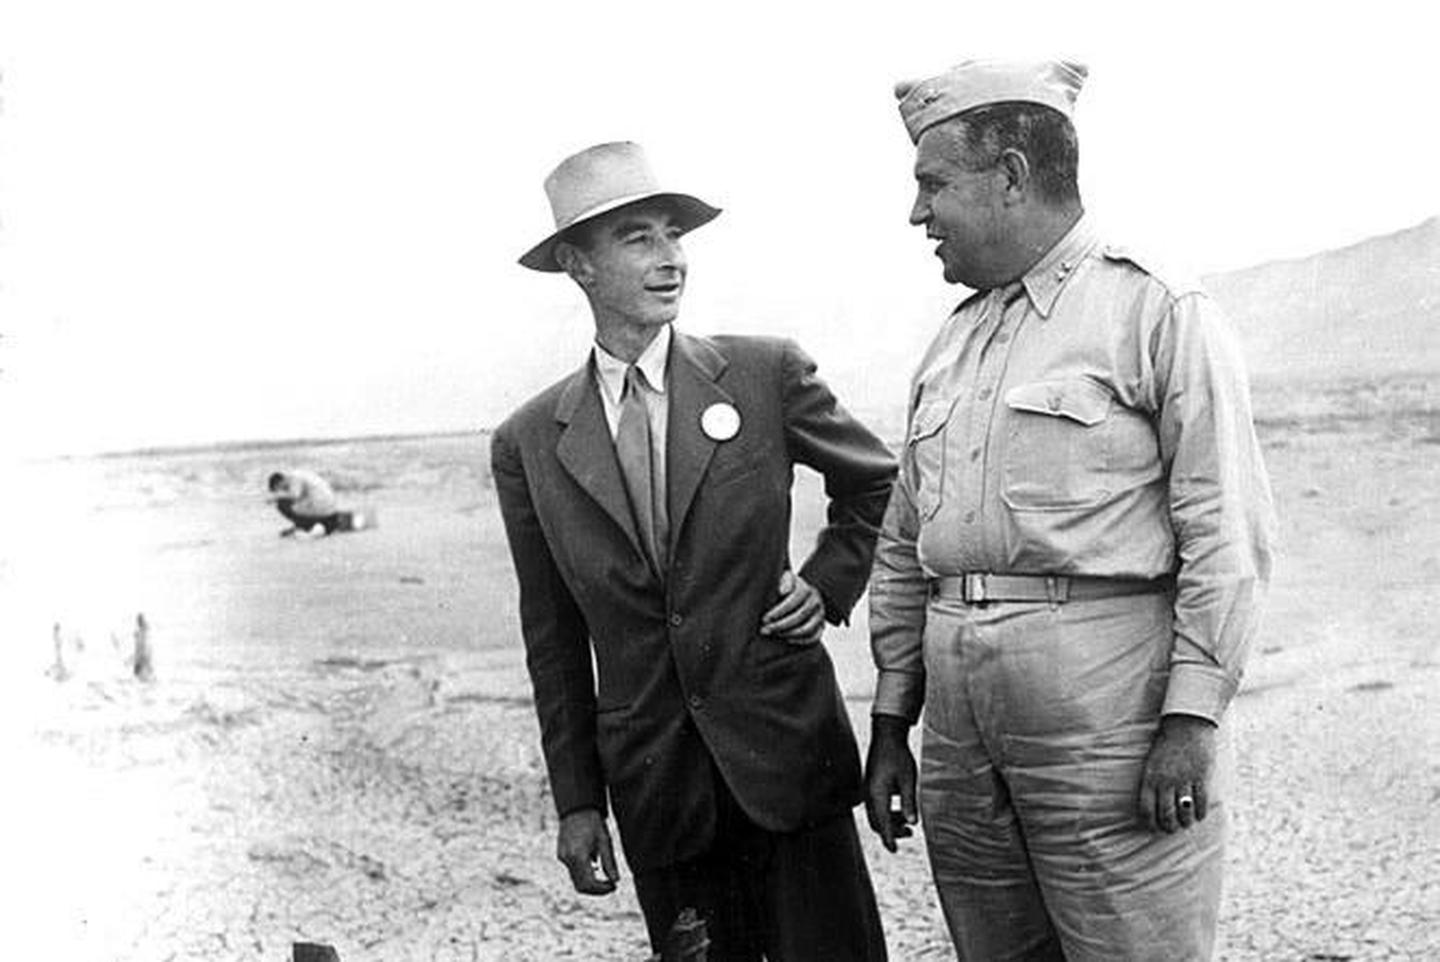 Oppenheimer and Groves at Trinity Test SiteJ. Robert Oppenheimer and Gen. Leslie Groves at the Trinity Test Site.